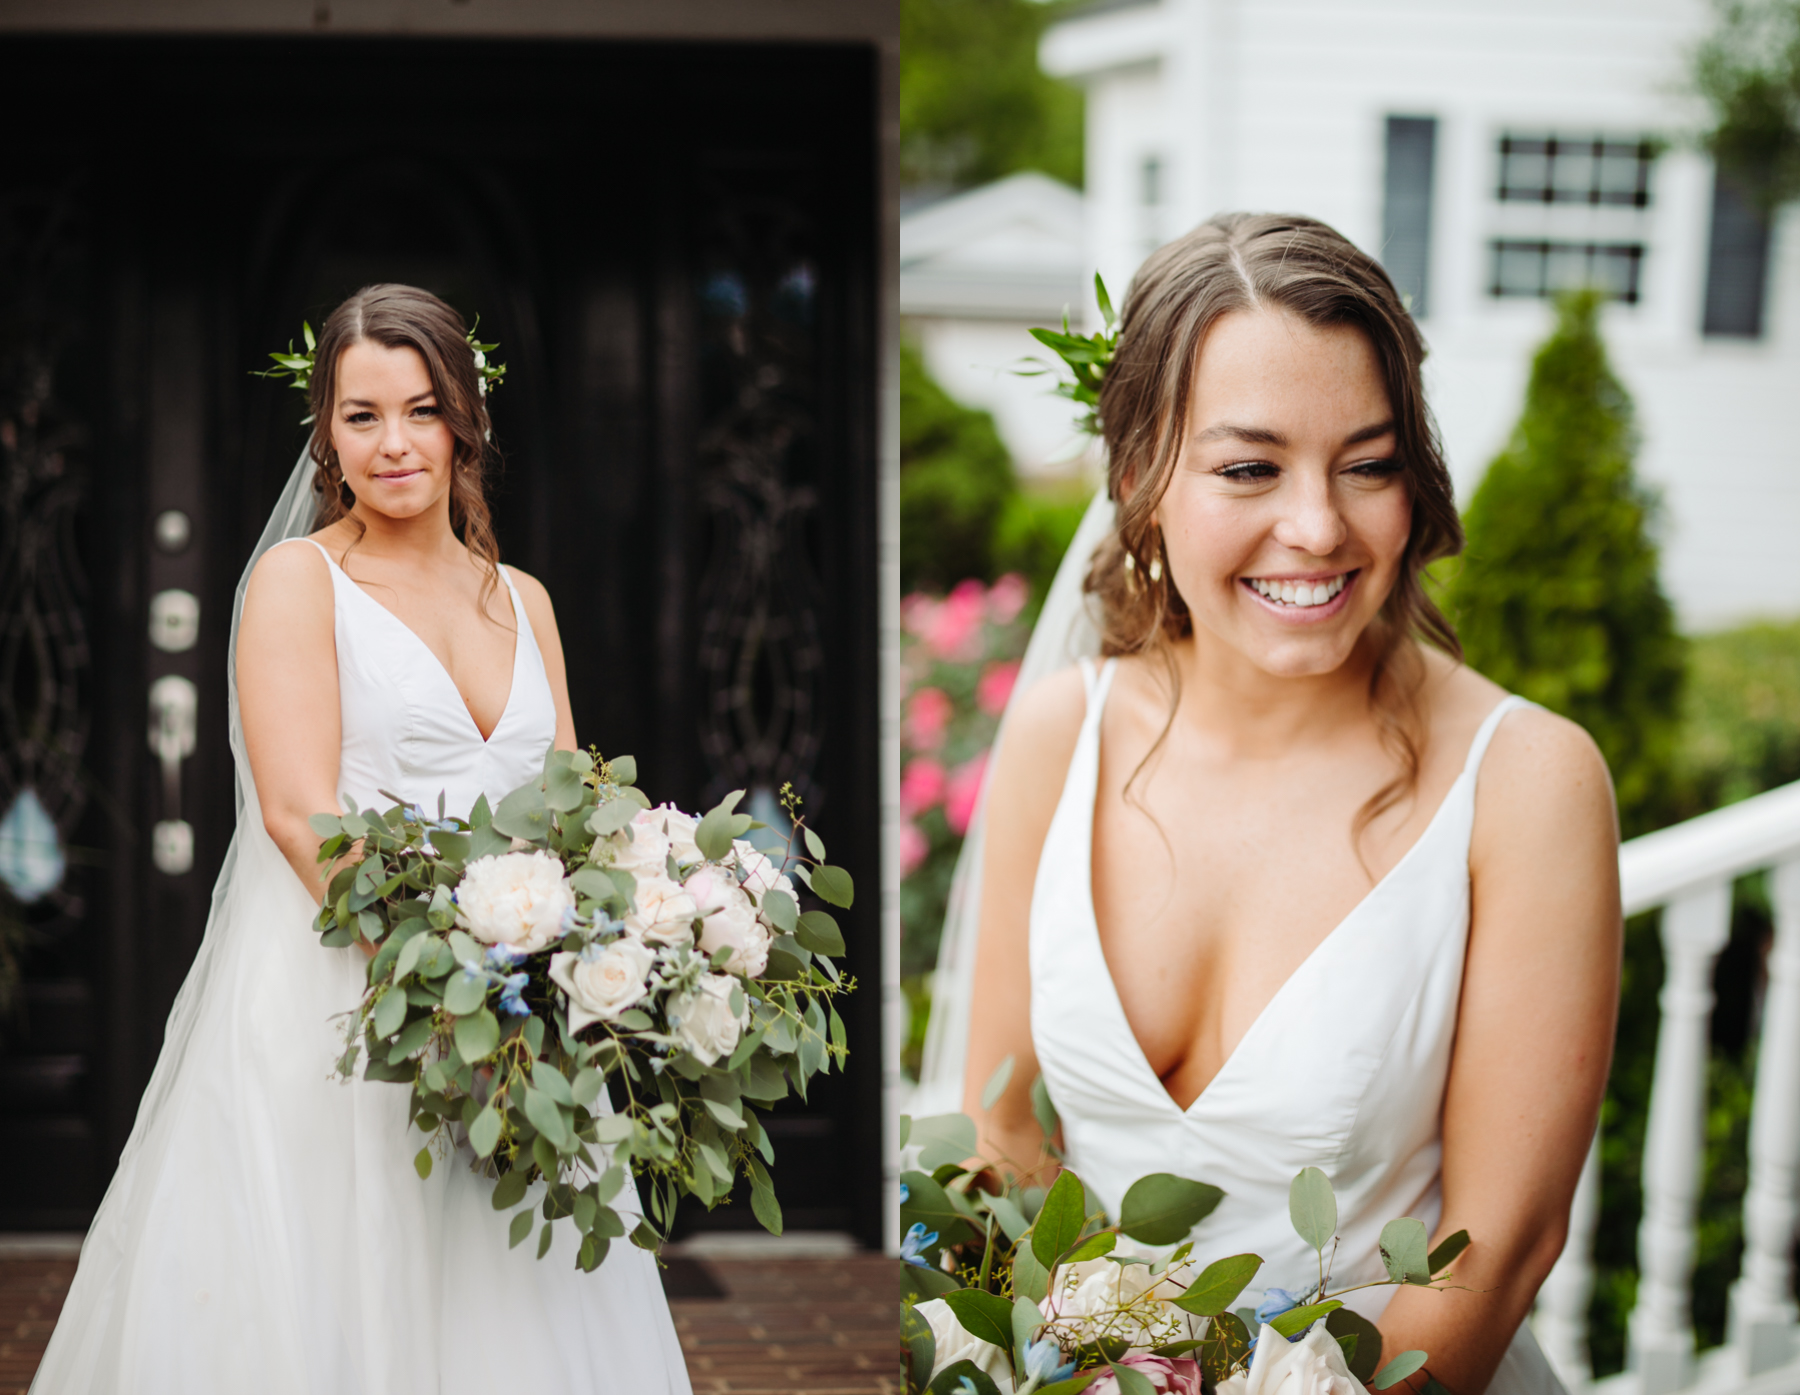 Bridal portraits before a Sunny summer wedding at Dara's Garden in Knoxville, Tennessee